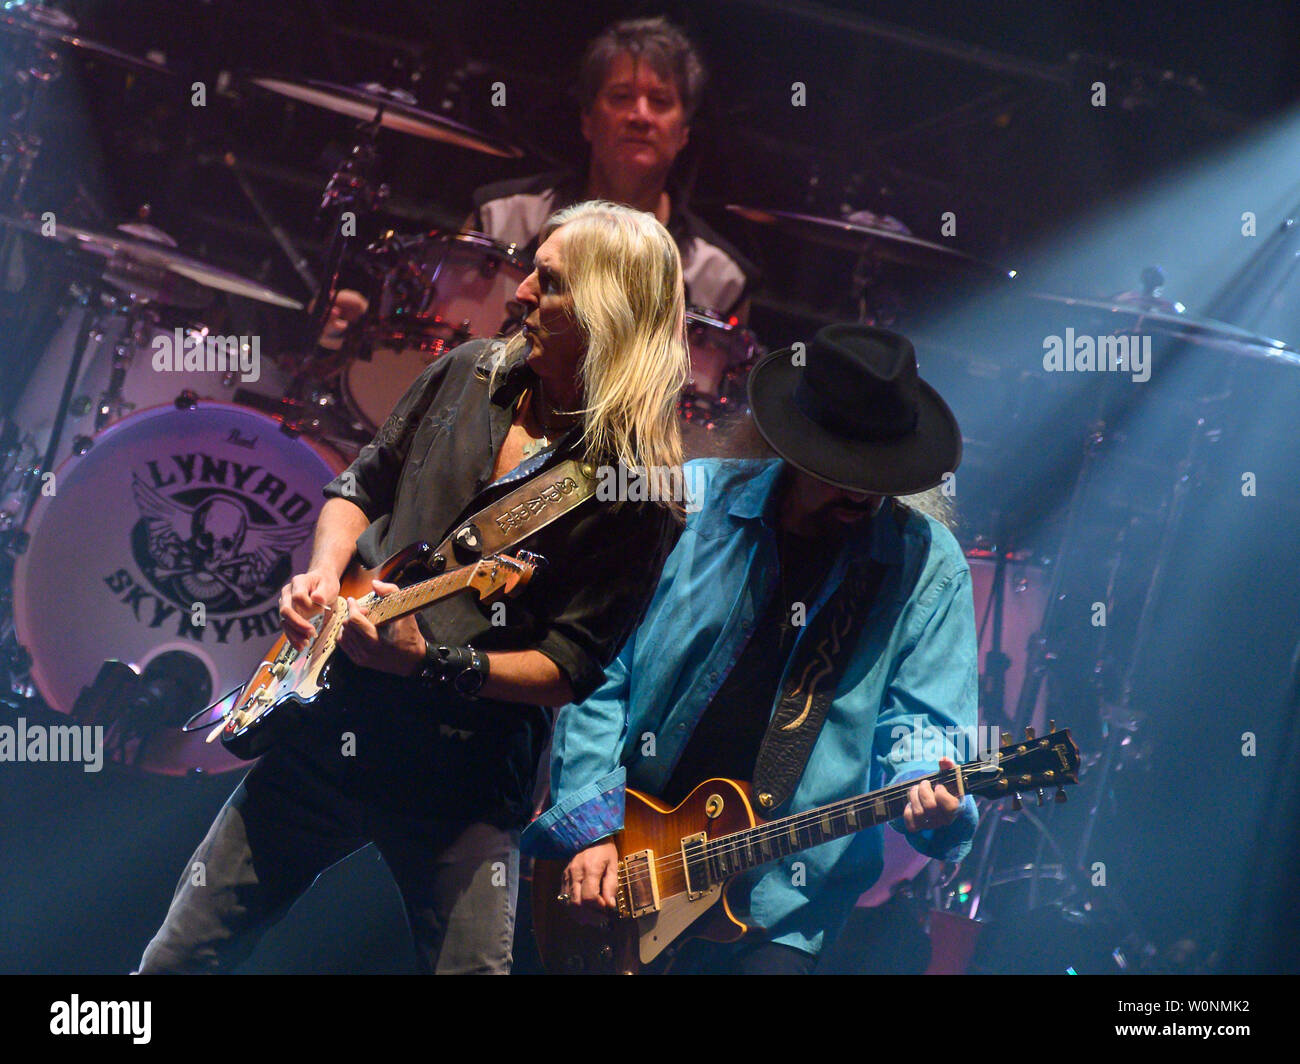 Glasgow, Scotland, UK. 26th June, 2019. American Southern Rocker Lynyrd Skynyrd play their last ever Scottish Show in Glasgow's SSE Hydro, Great Britain. Credit: Stuart Westwood Stock Photo